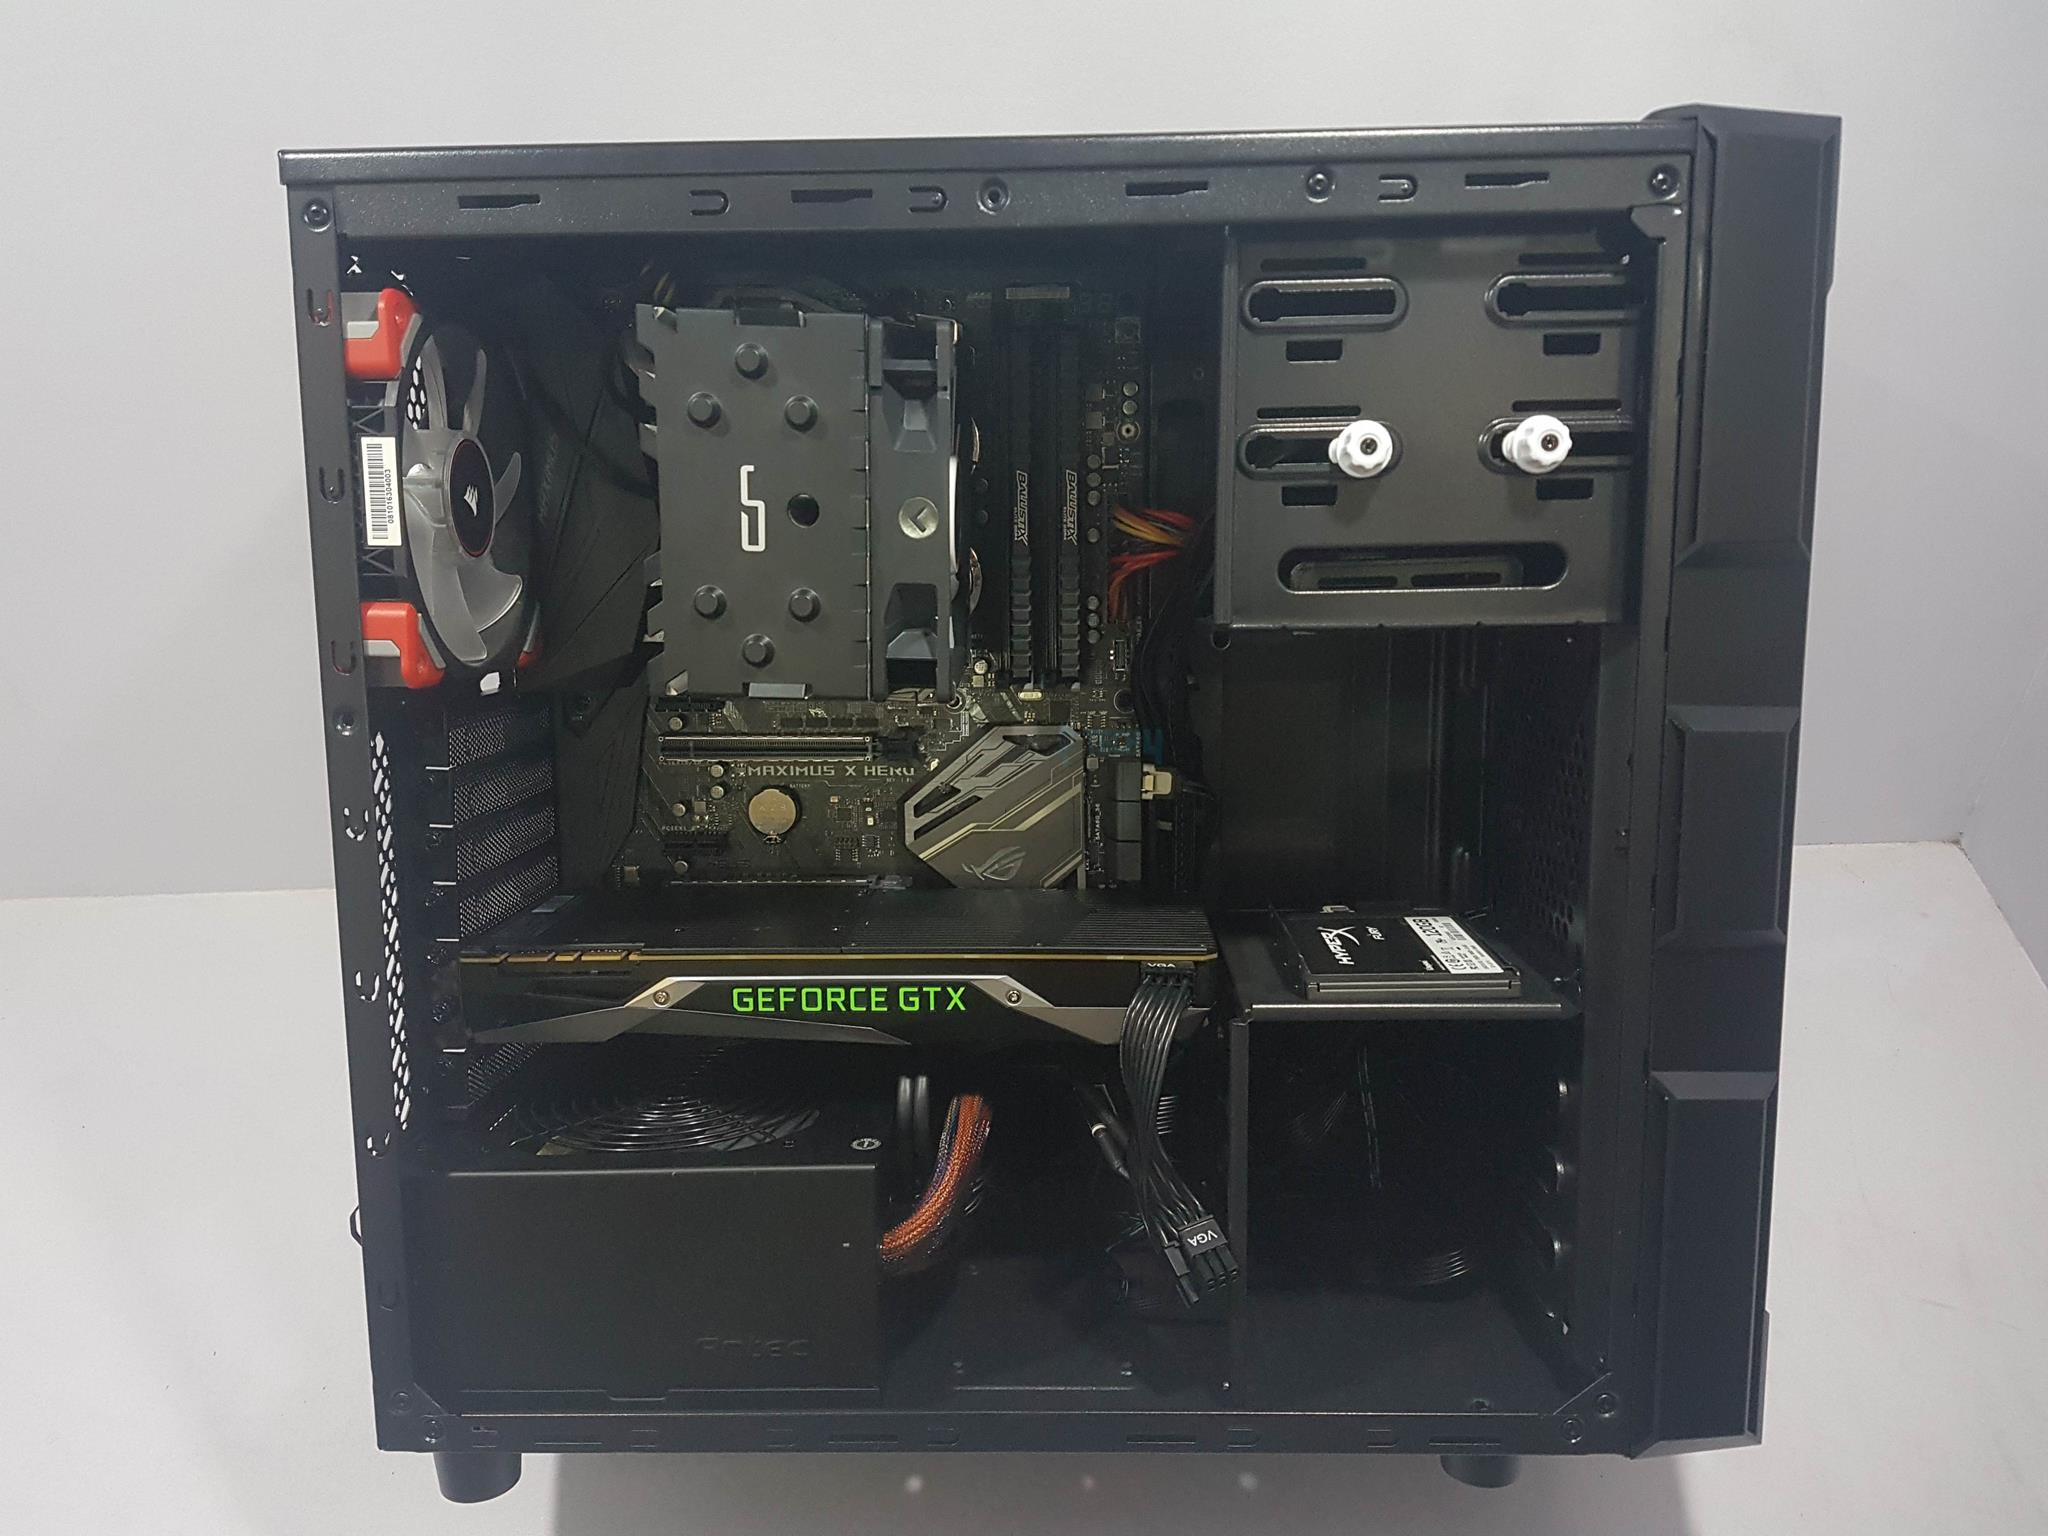 Antec Case Wiring Diagram Manual Guide 580 Images Gallery